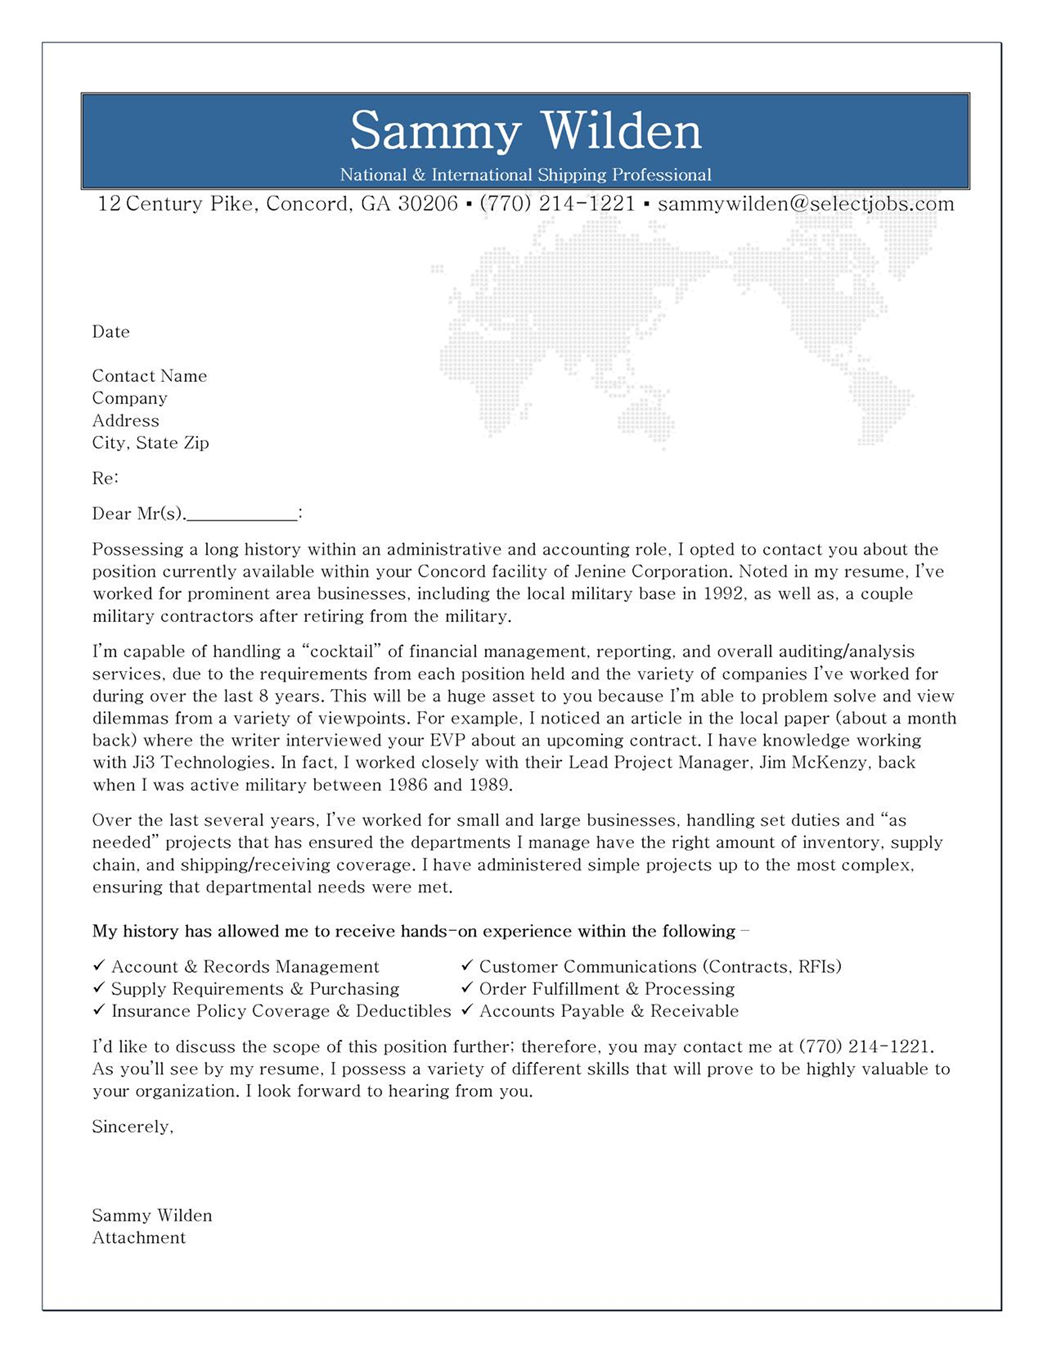 Cover Letter Example for Shipping Receiving Professional – Professional Cover Letter Template Example